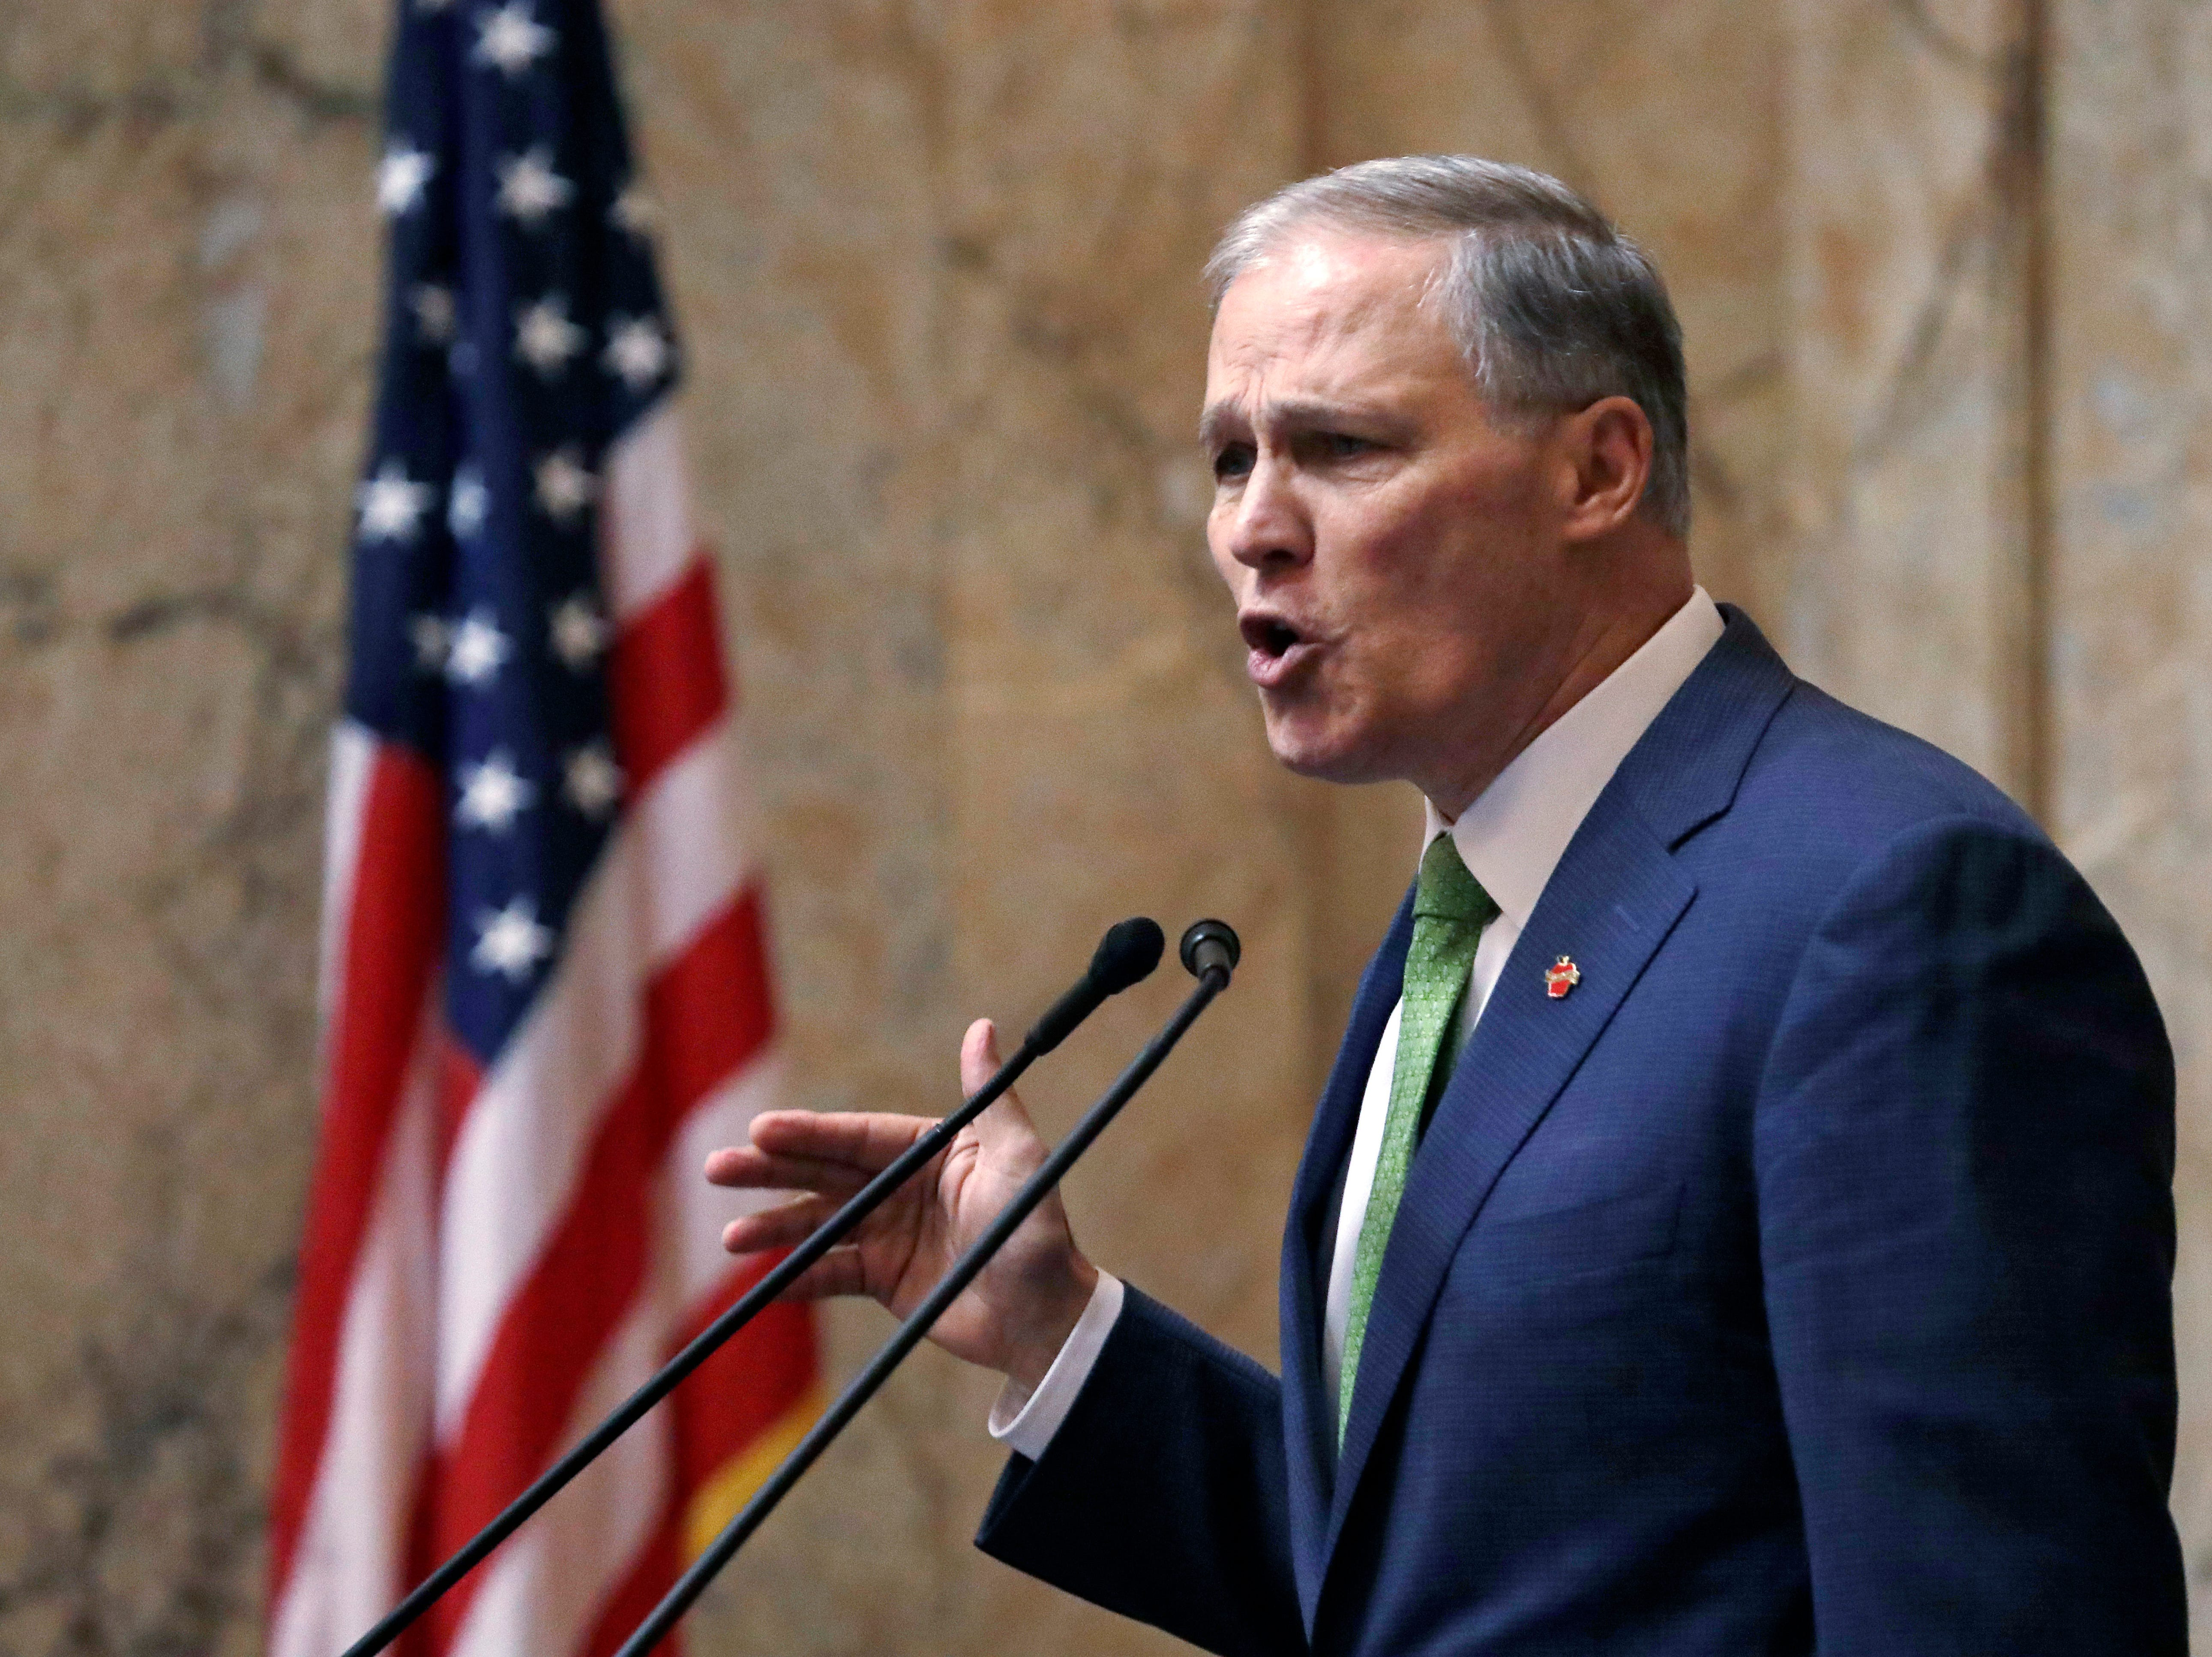 Gov. Jay Inslee gives his State of the State address Tuesday in Olympia. Inslee, who is mulling a 2020 White House bid, highlighted his clean energy agenda in the annual speech. (AP Photo/Elaine Thompson)